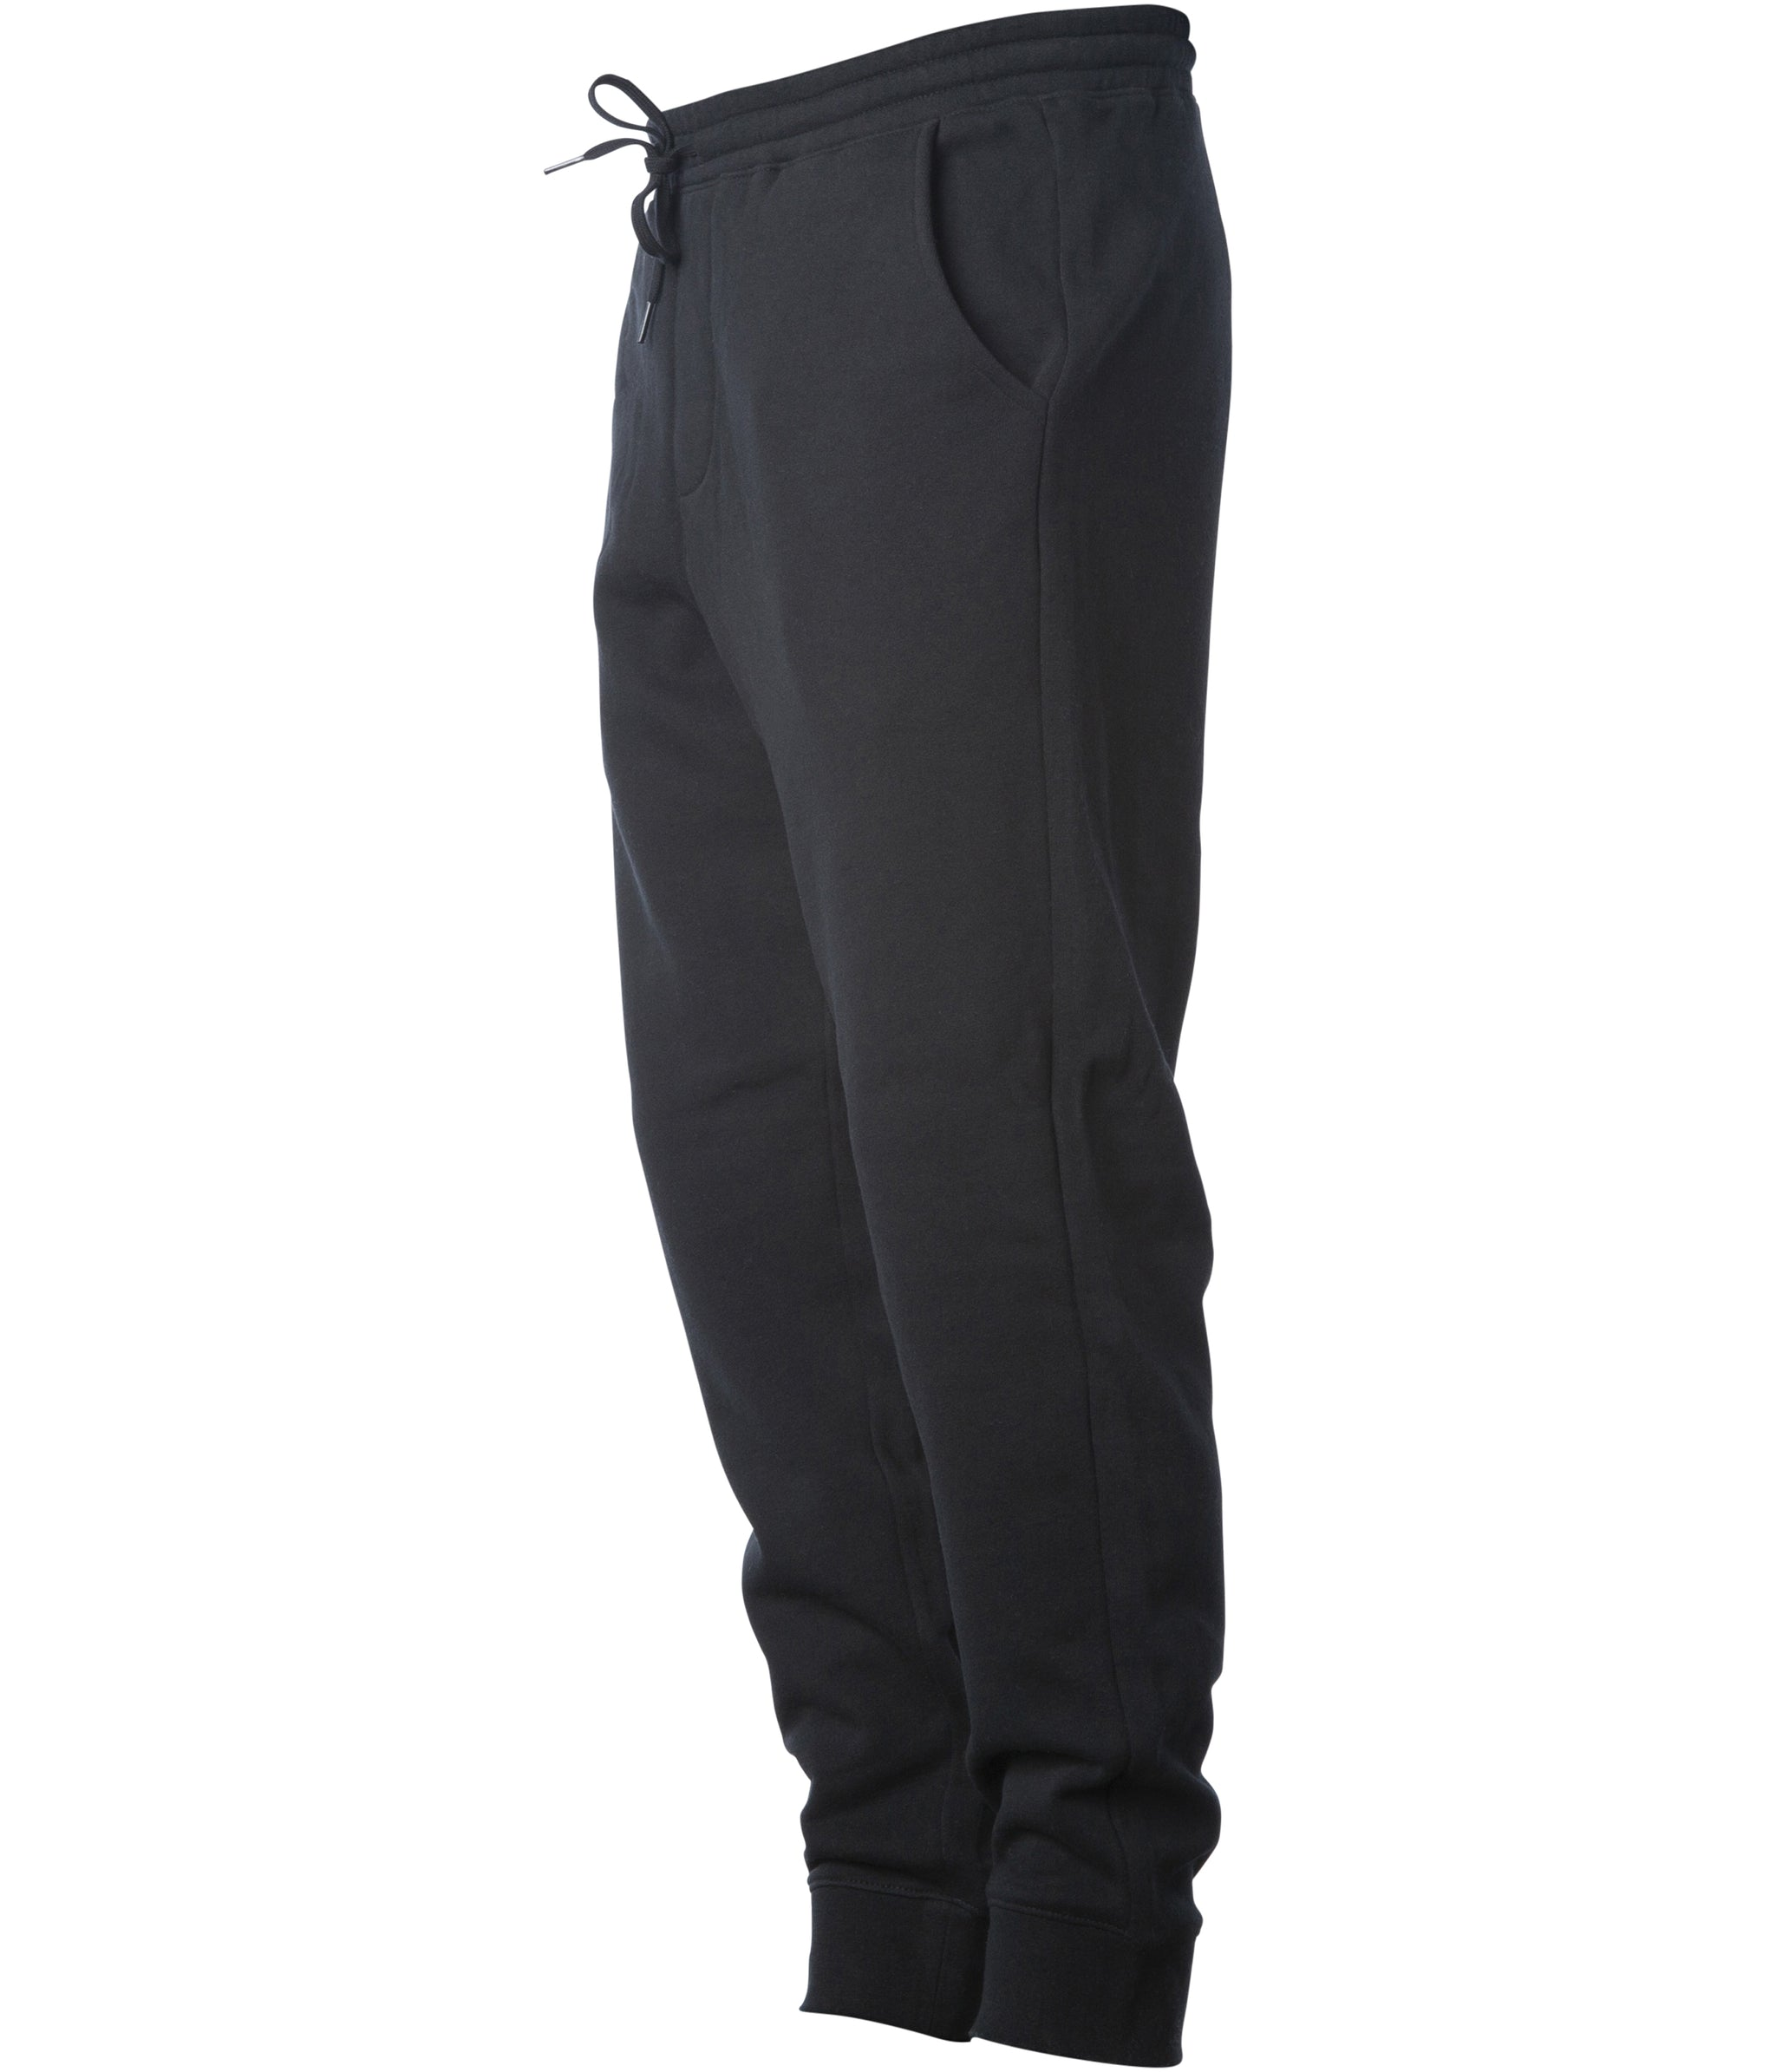 51ced0934d9a5 Men's Midweight Fleece Pant | Independent Trading Co. - Independent Trading  Company